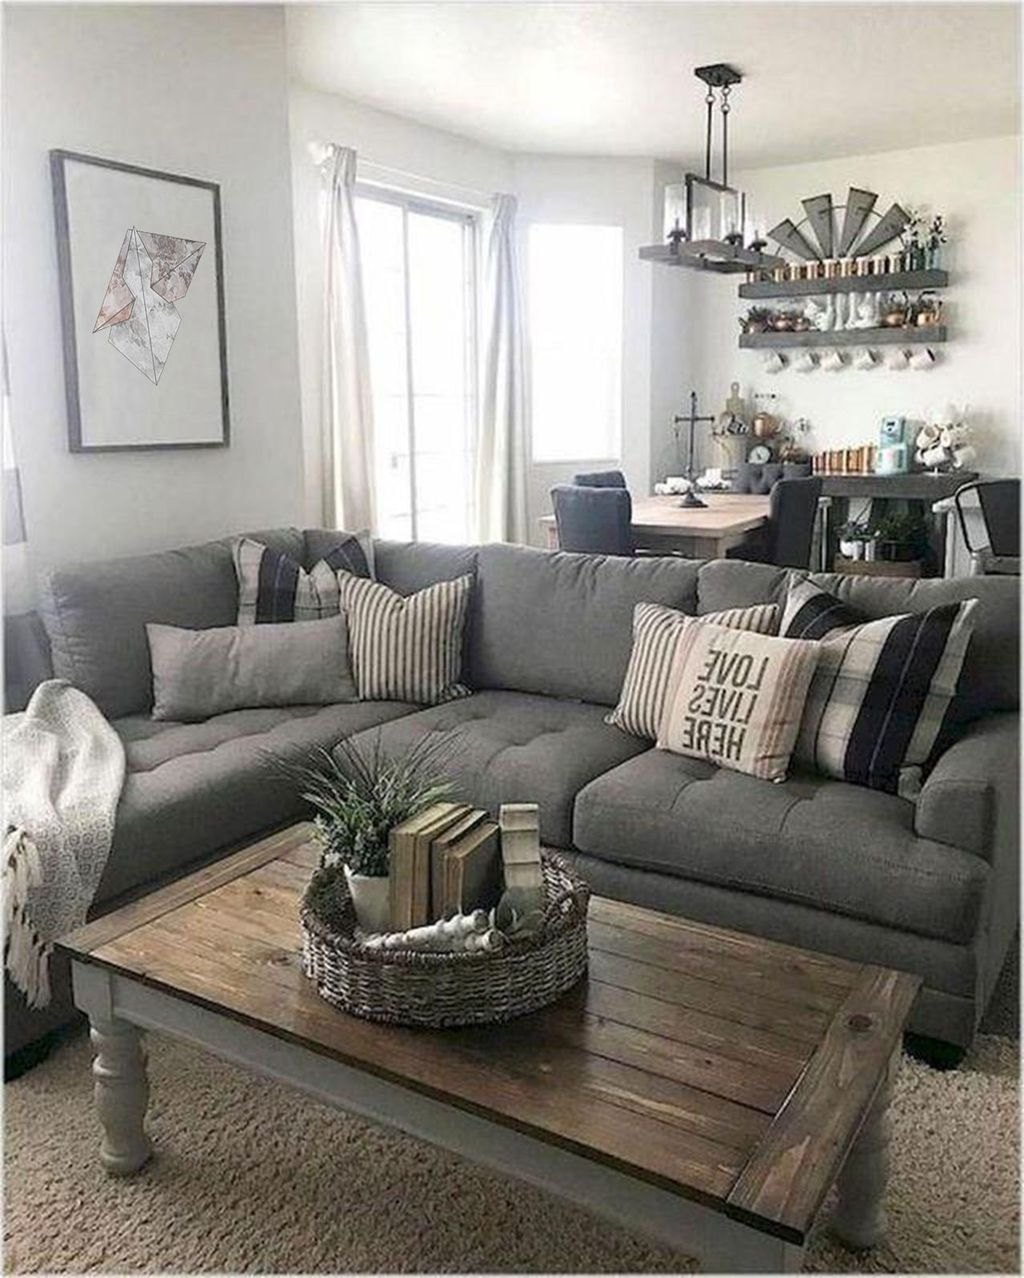 Awesome Rustic Furniture Ideas For Living Room Decor 22